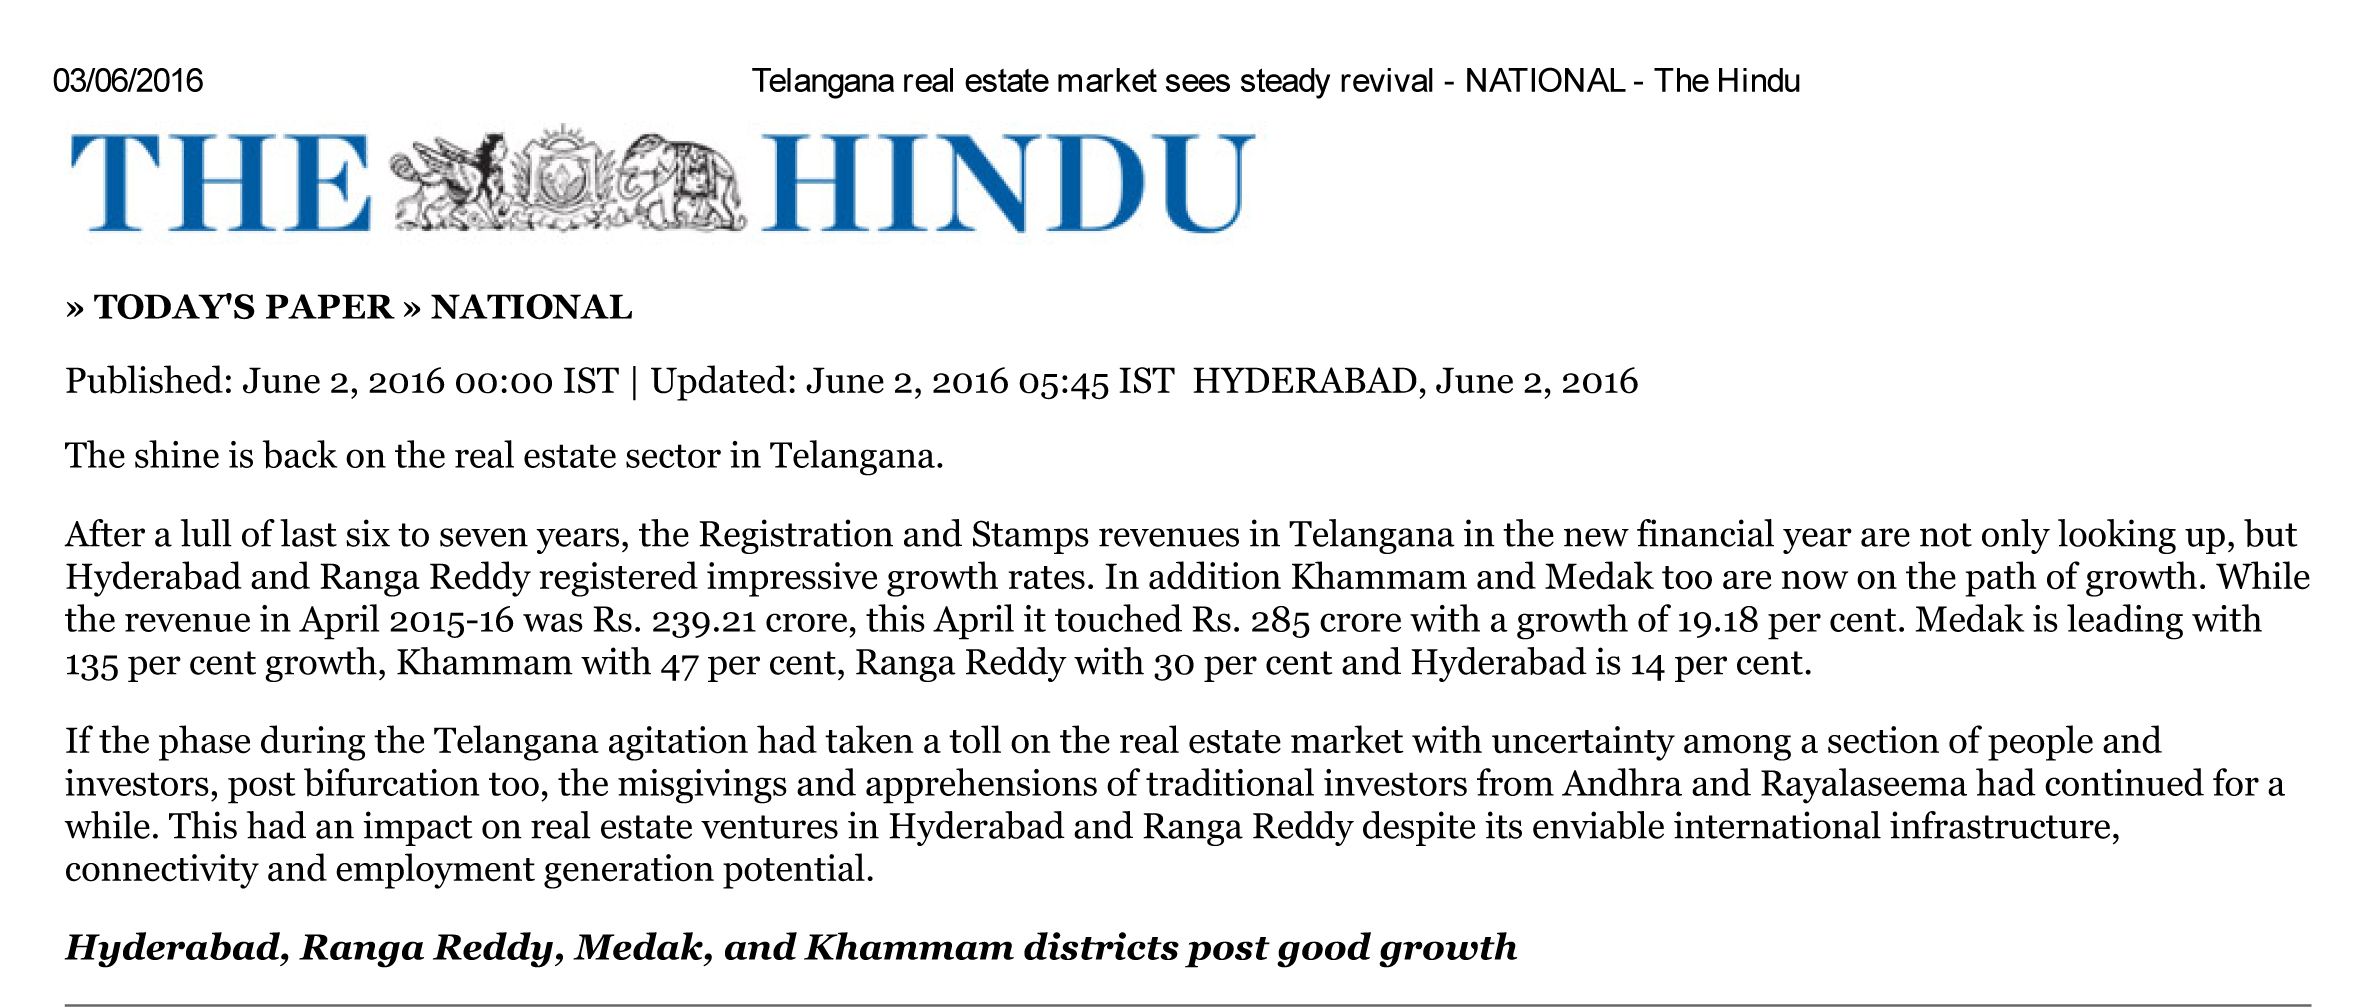 Telangana real estate market sees steady revival